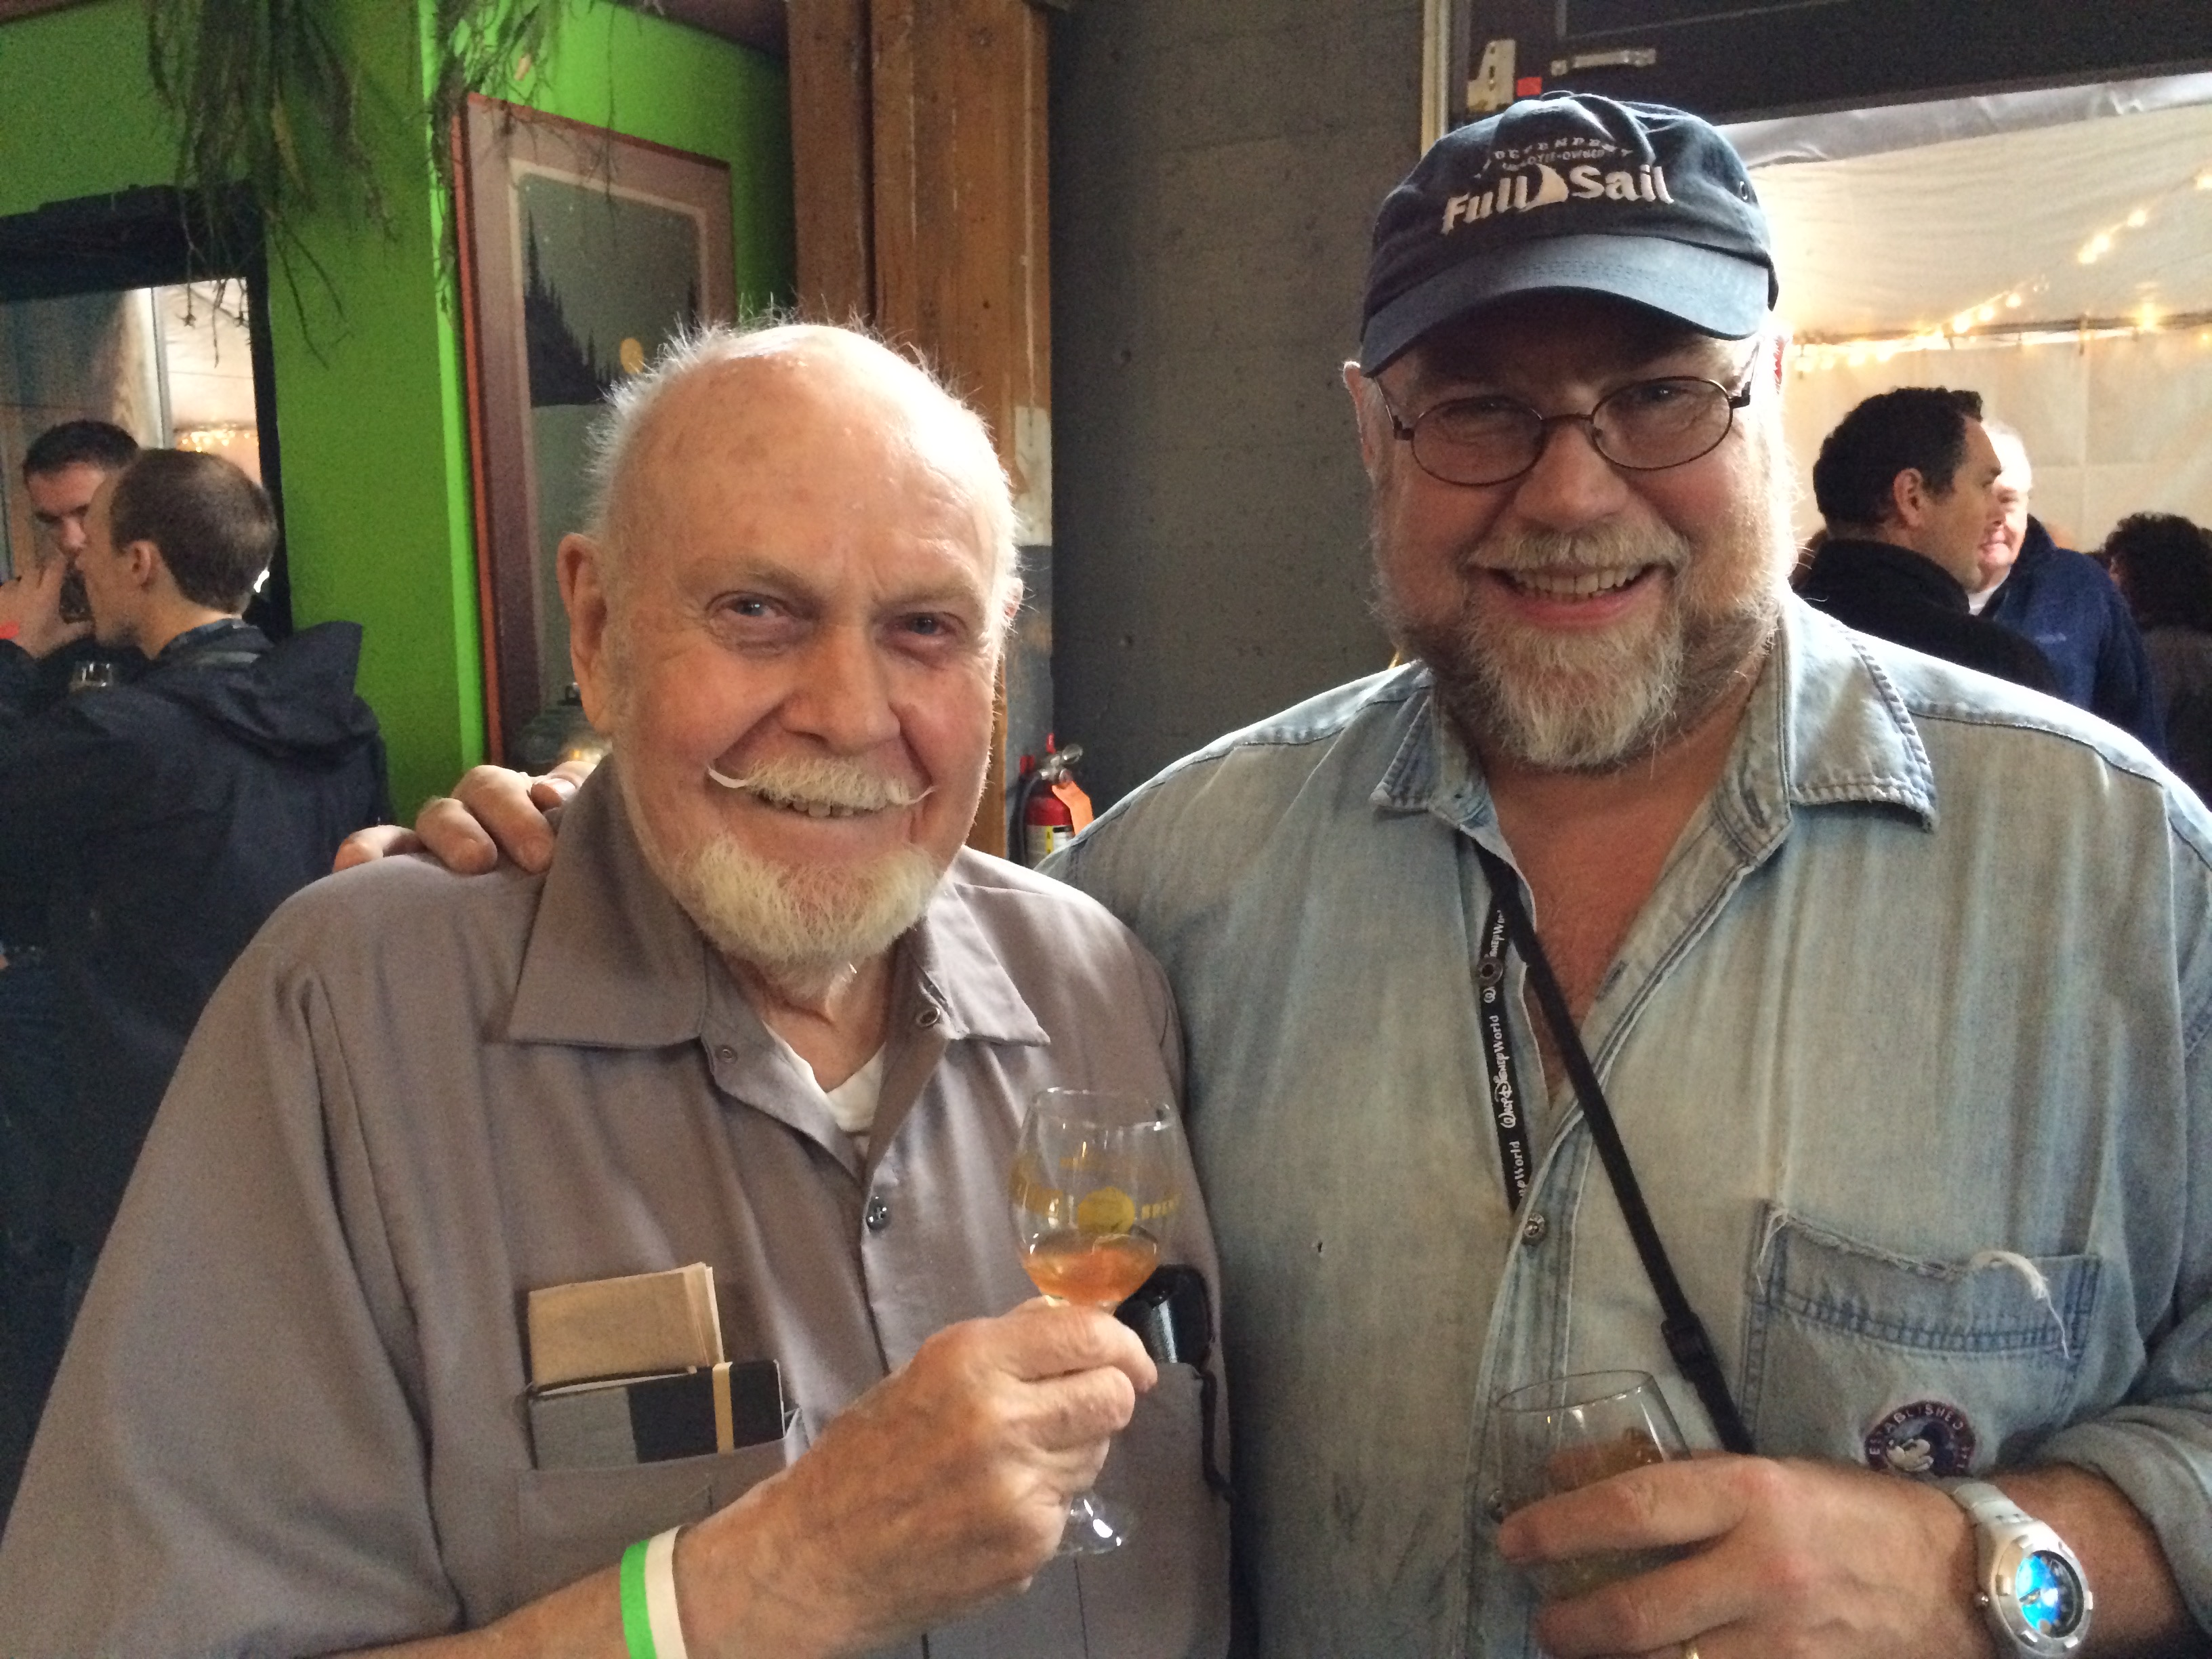 The late Fred Eckhardt and John Foyston at Hair of the Dog Brewing's 20th Anniversary in November 2013.